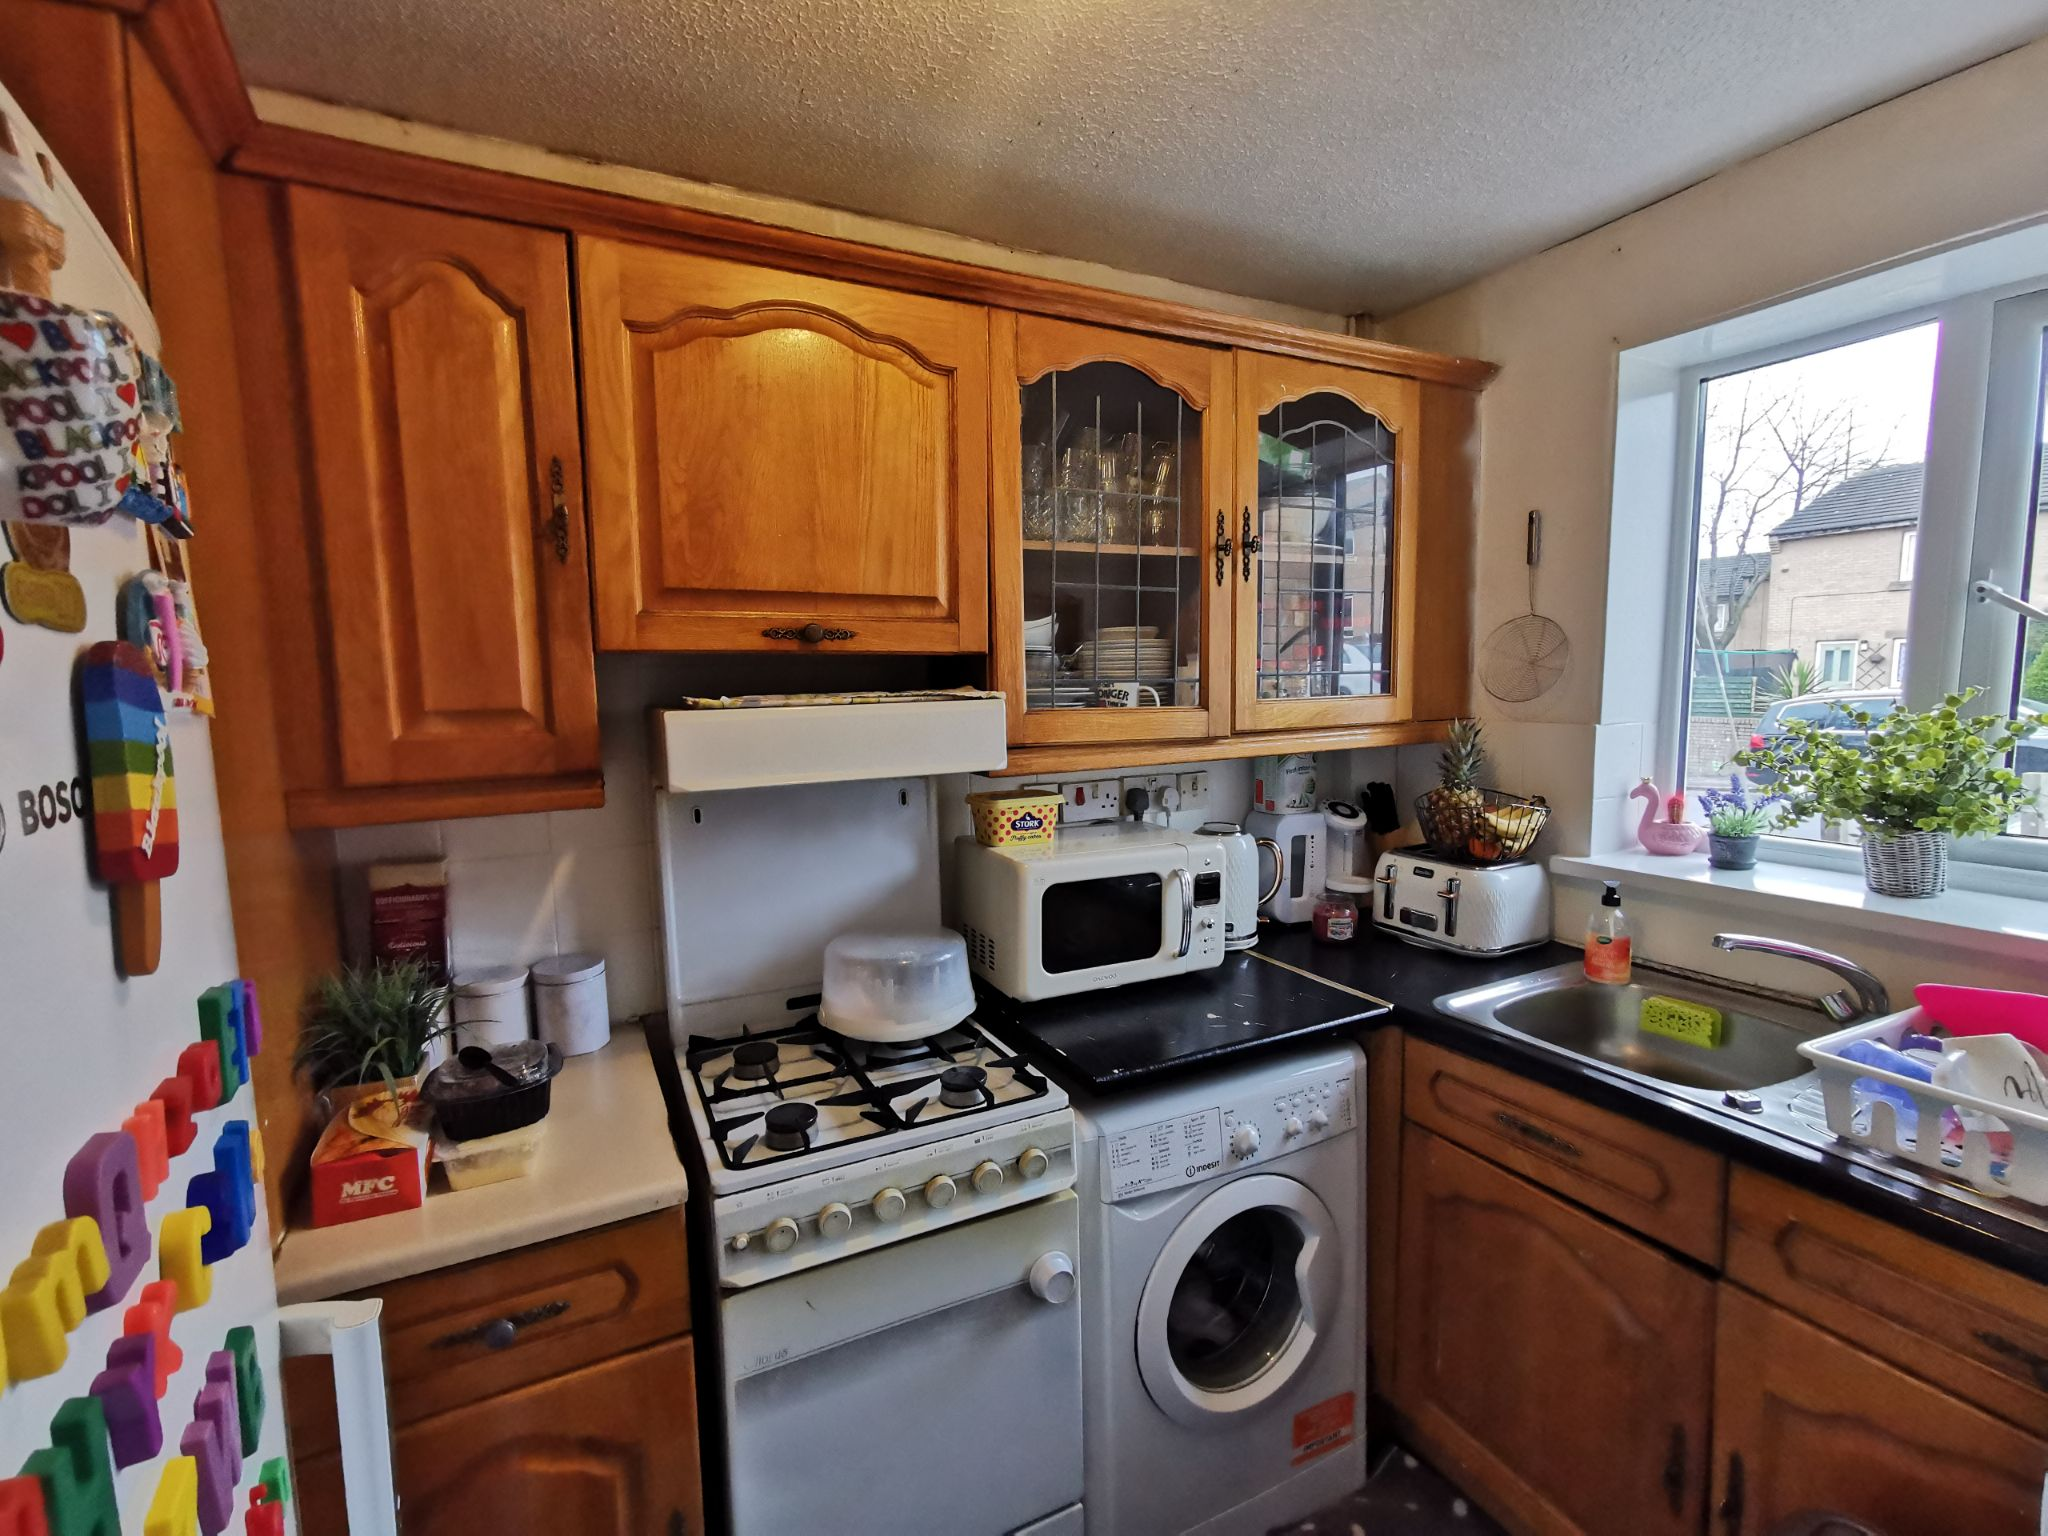 2 bedroom mid terraced house For Sale in Bradford - Photograph 3.